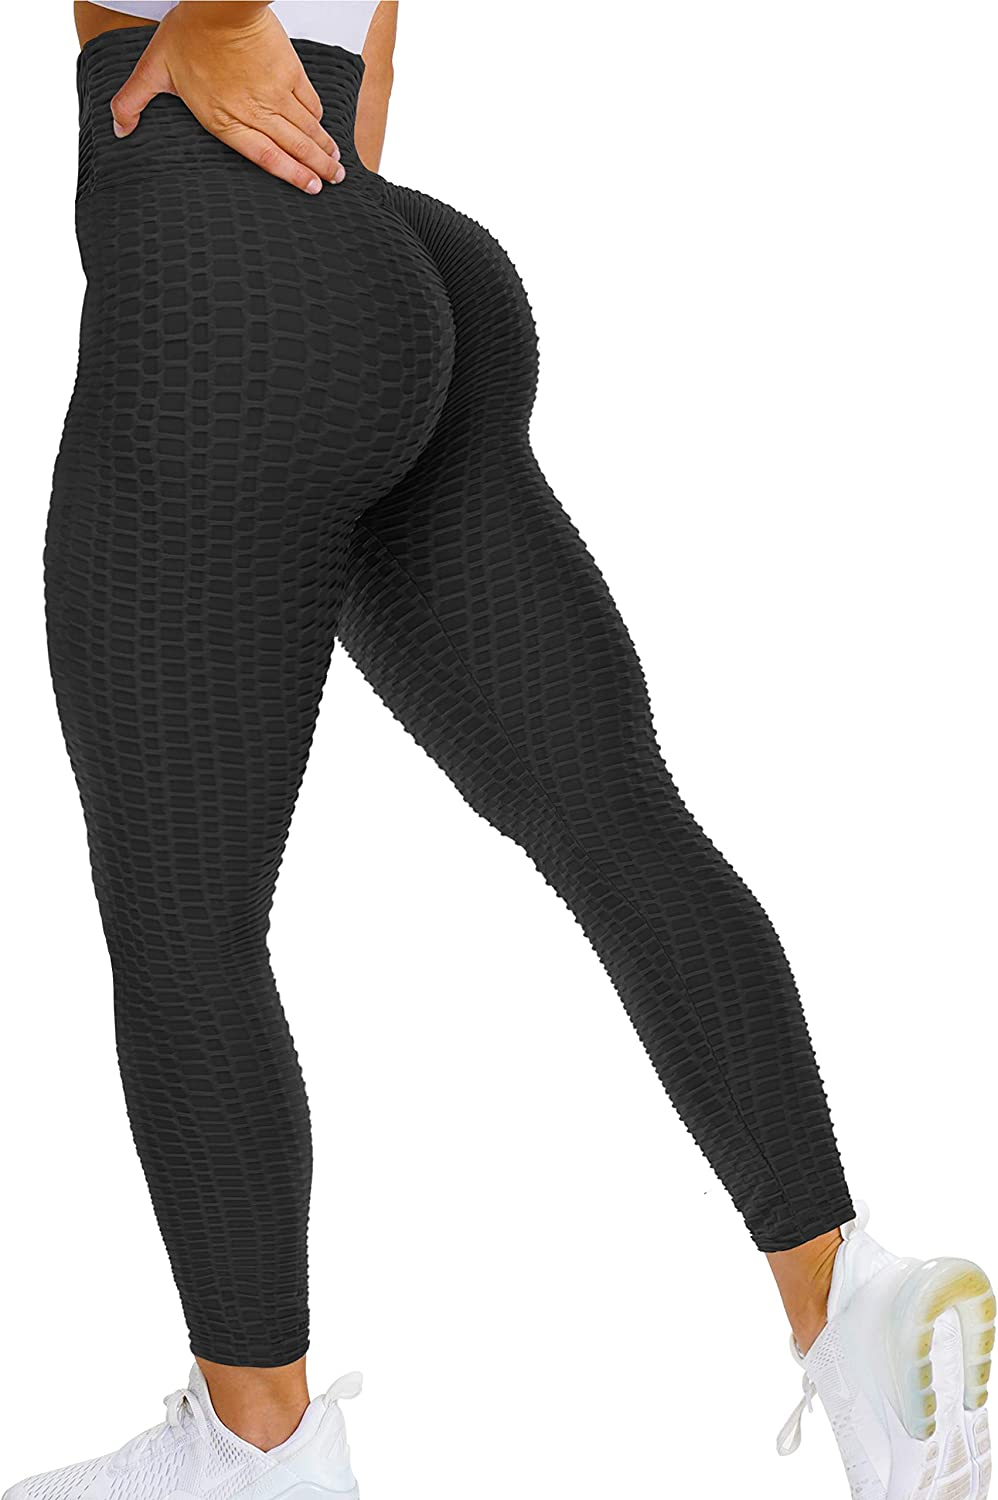 YEOREO Scrunch Butt Lift Leggings for Women Workout Yoga Pants Ruched Booty High Waist Seamless Leggings Compression Tights